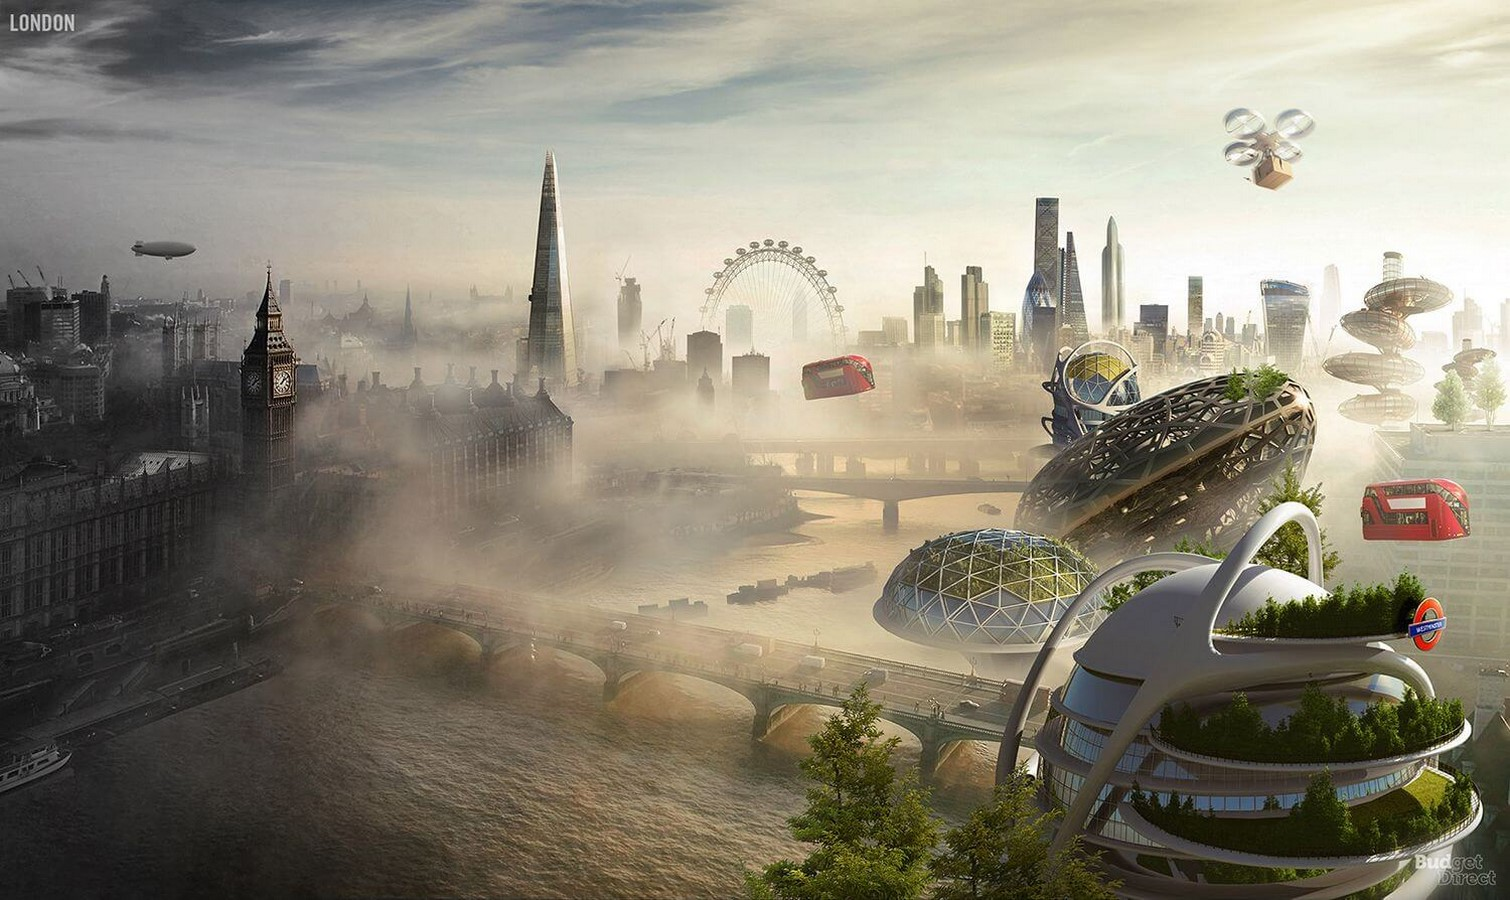 Features of the Future Sustainable City - Sheet24